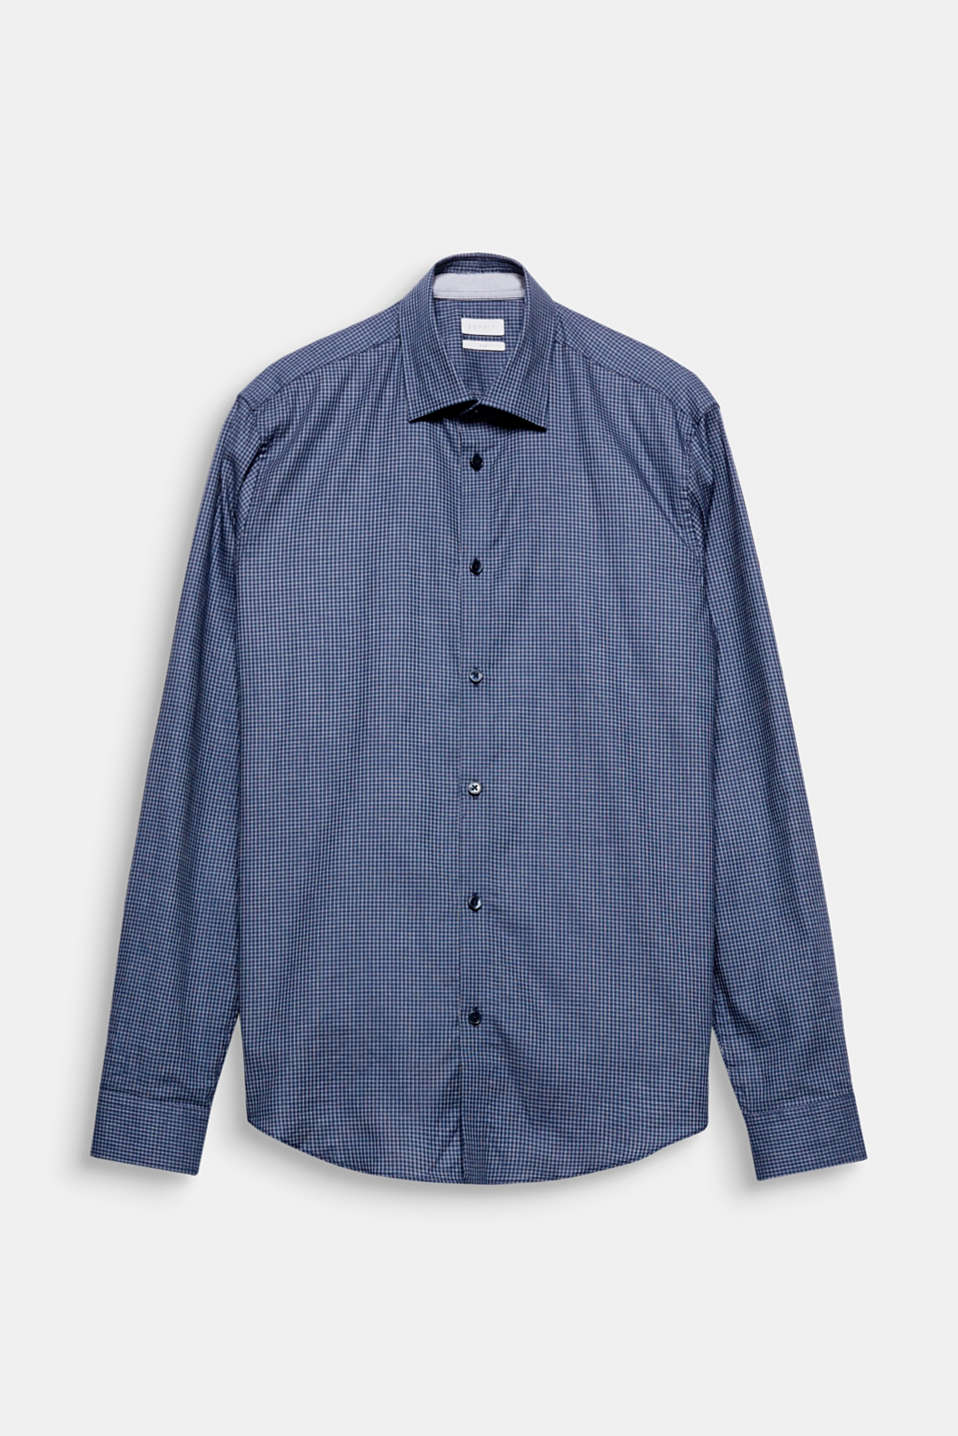 Suit up! The fine lattice pattern gives this easy-iron business shirt a smart look.